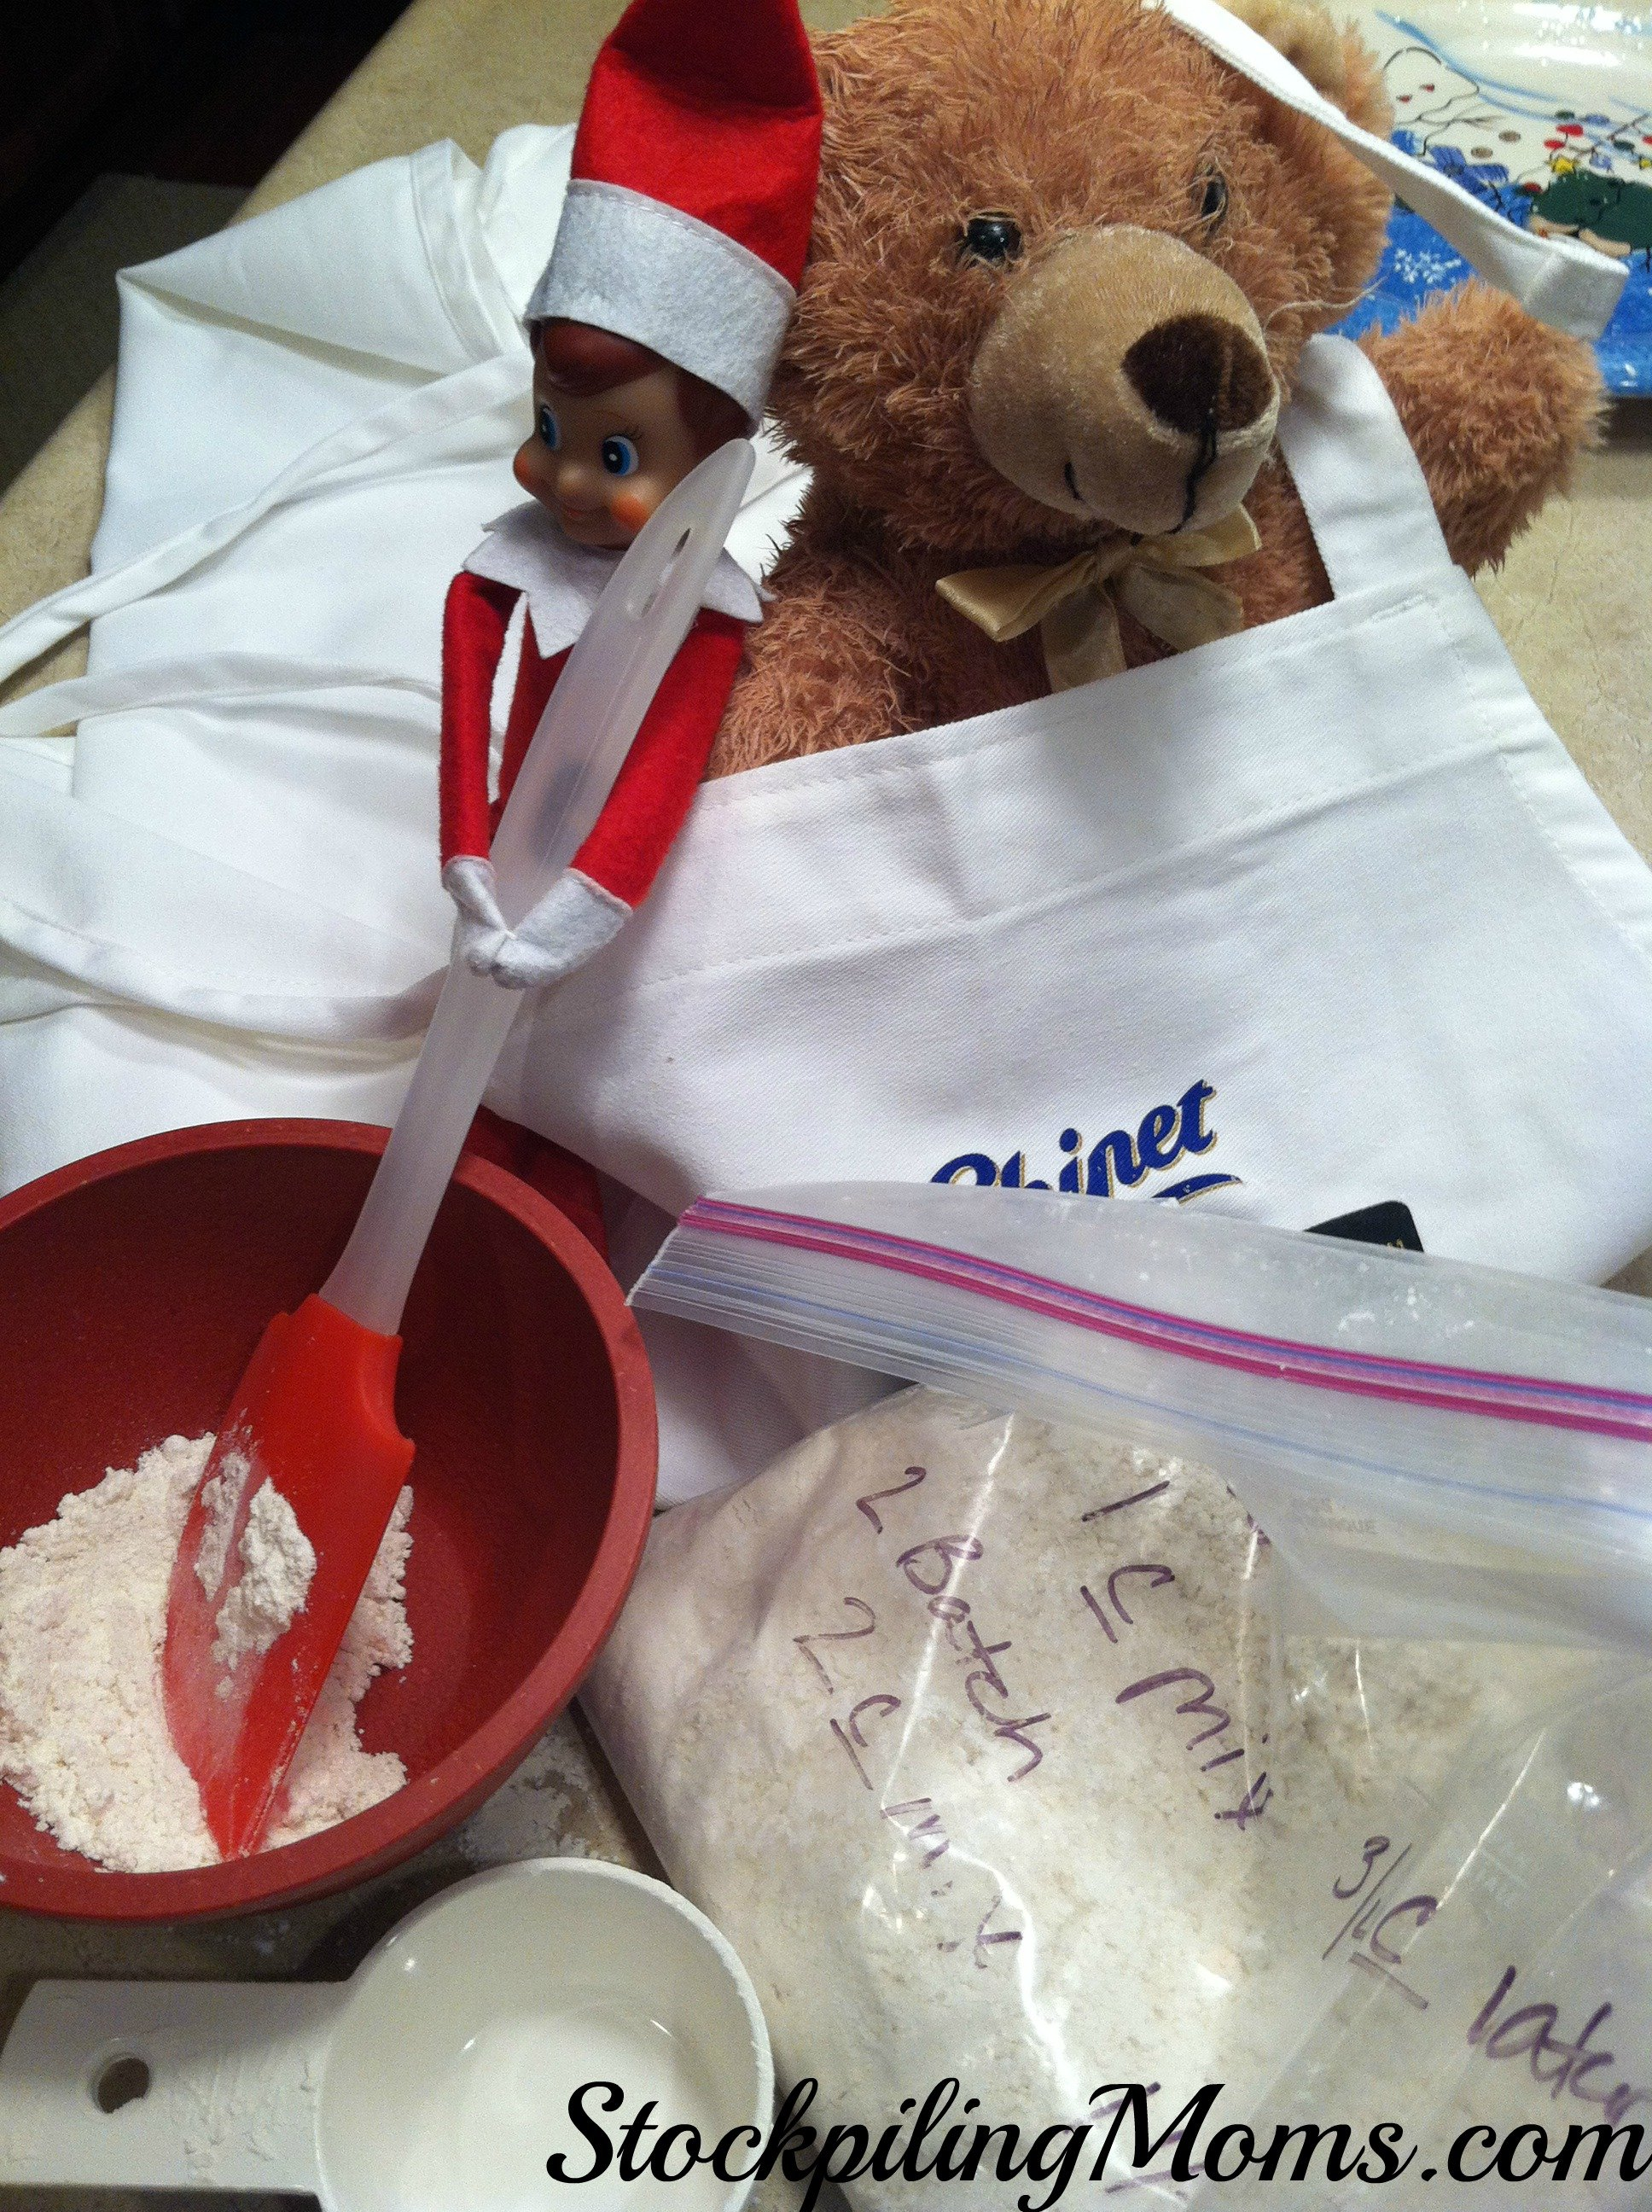 Meals For Moms: The Elf On The Shelf®